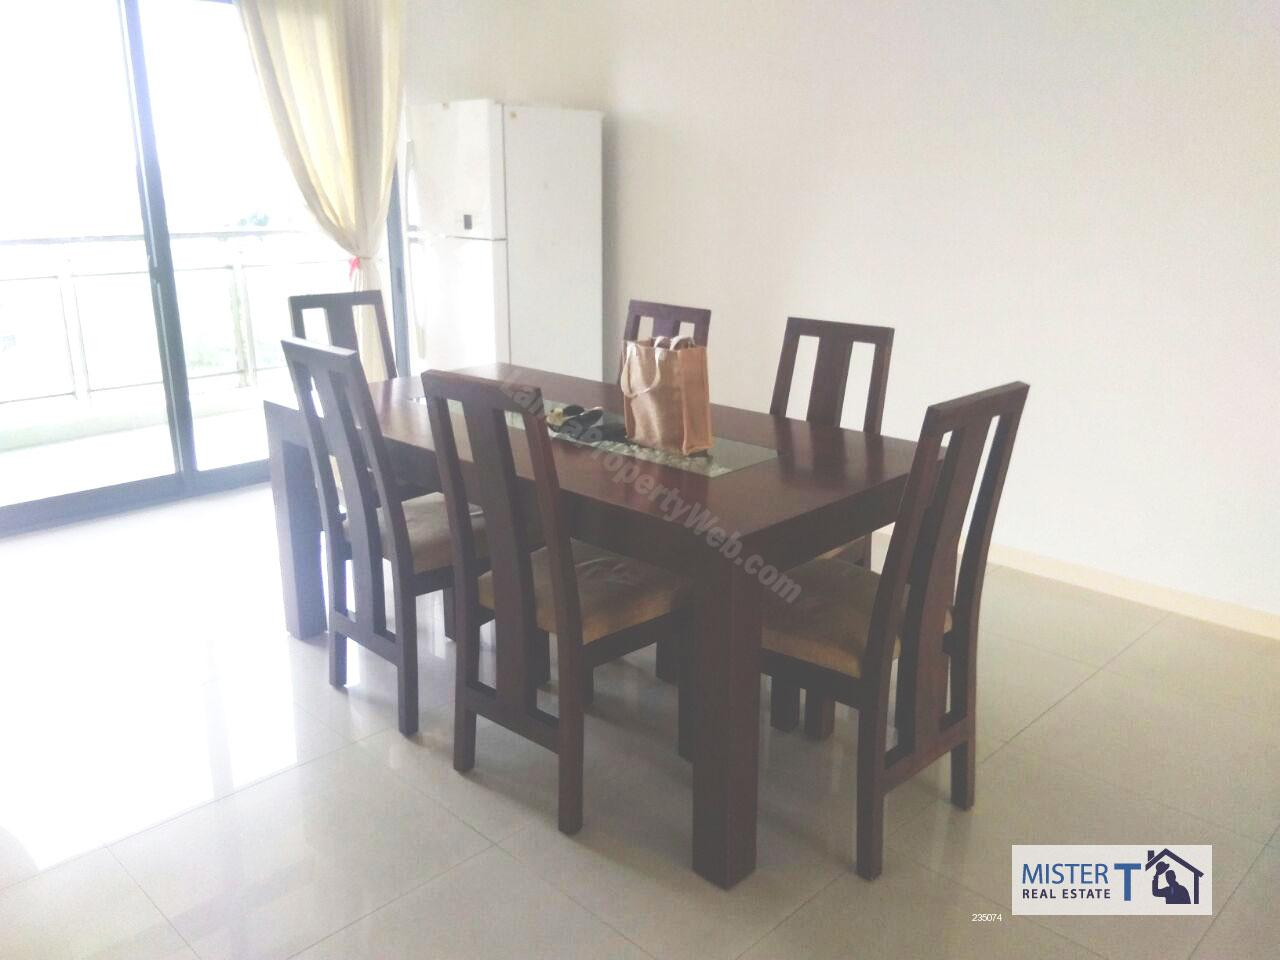 Apartment for rent in Colombo 5 - 04 Bedroom Apartment For Rent in Havelock City